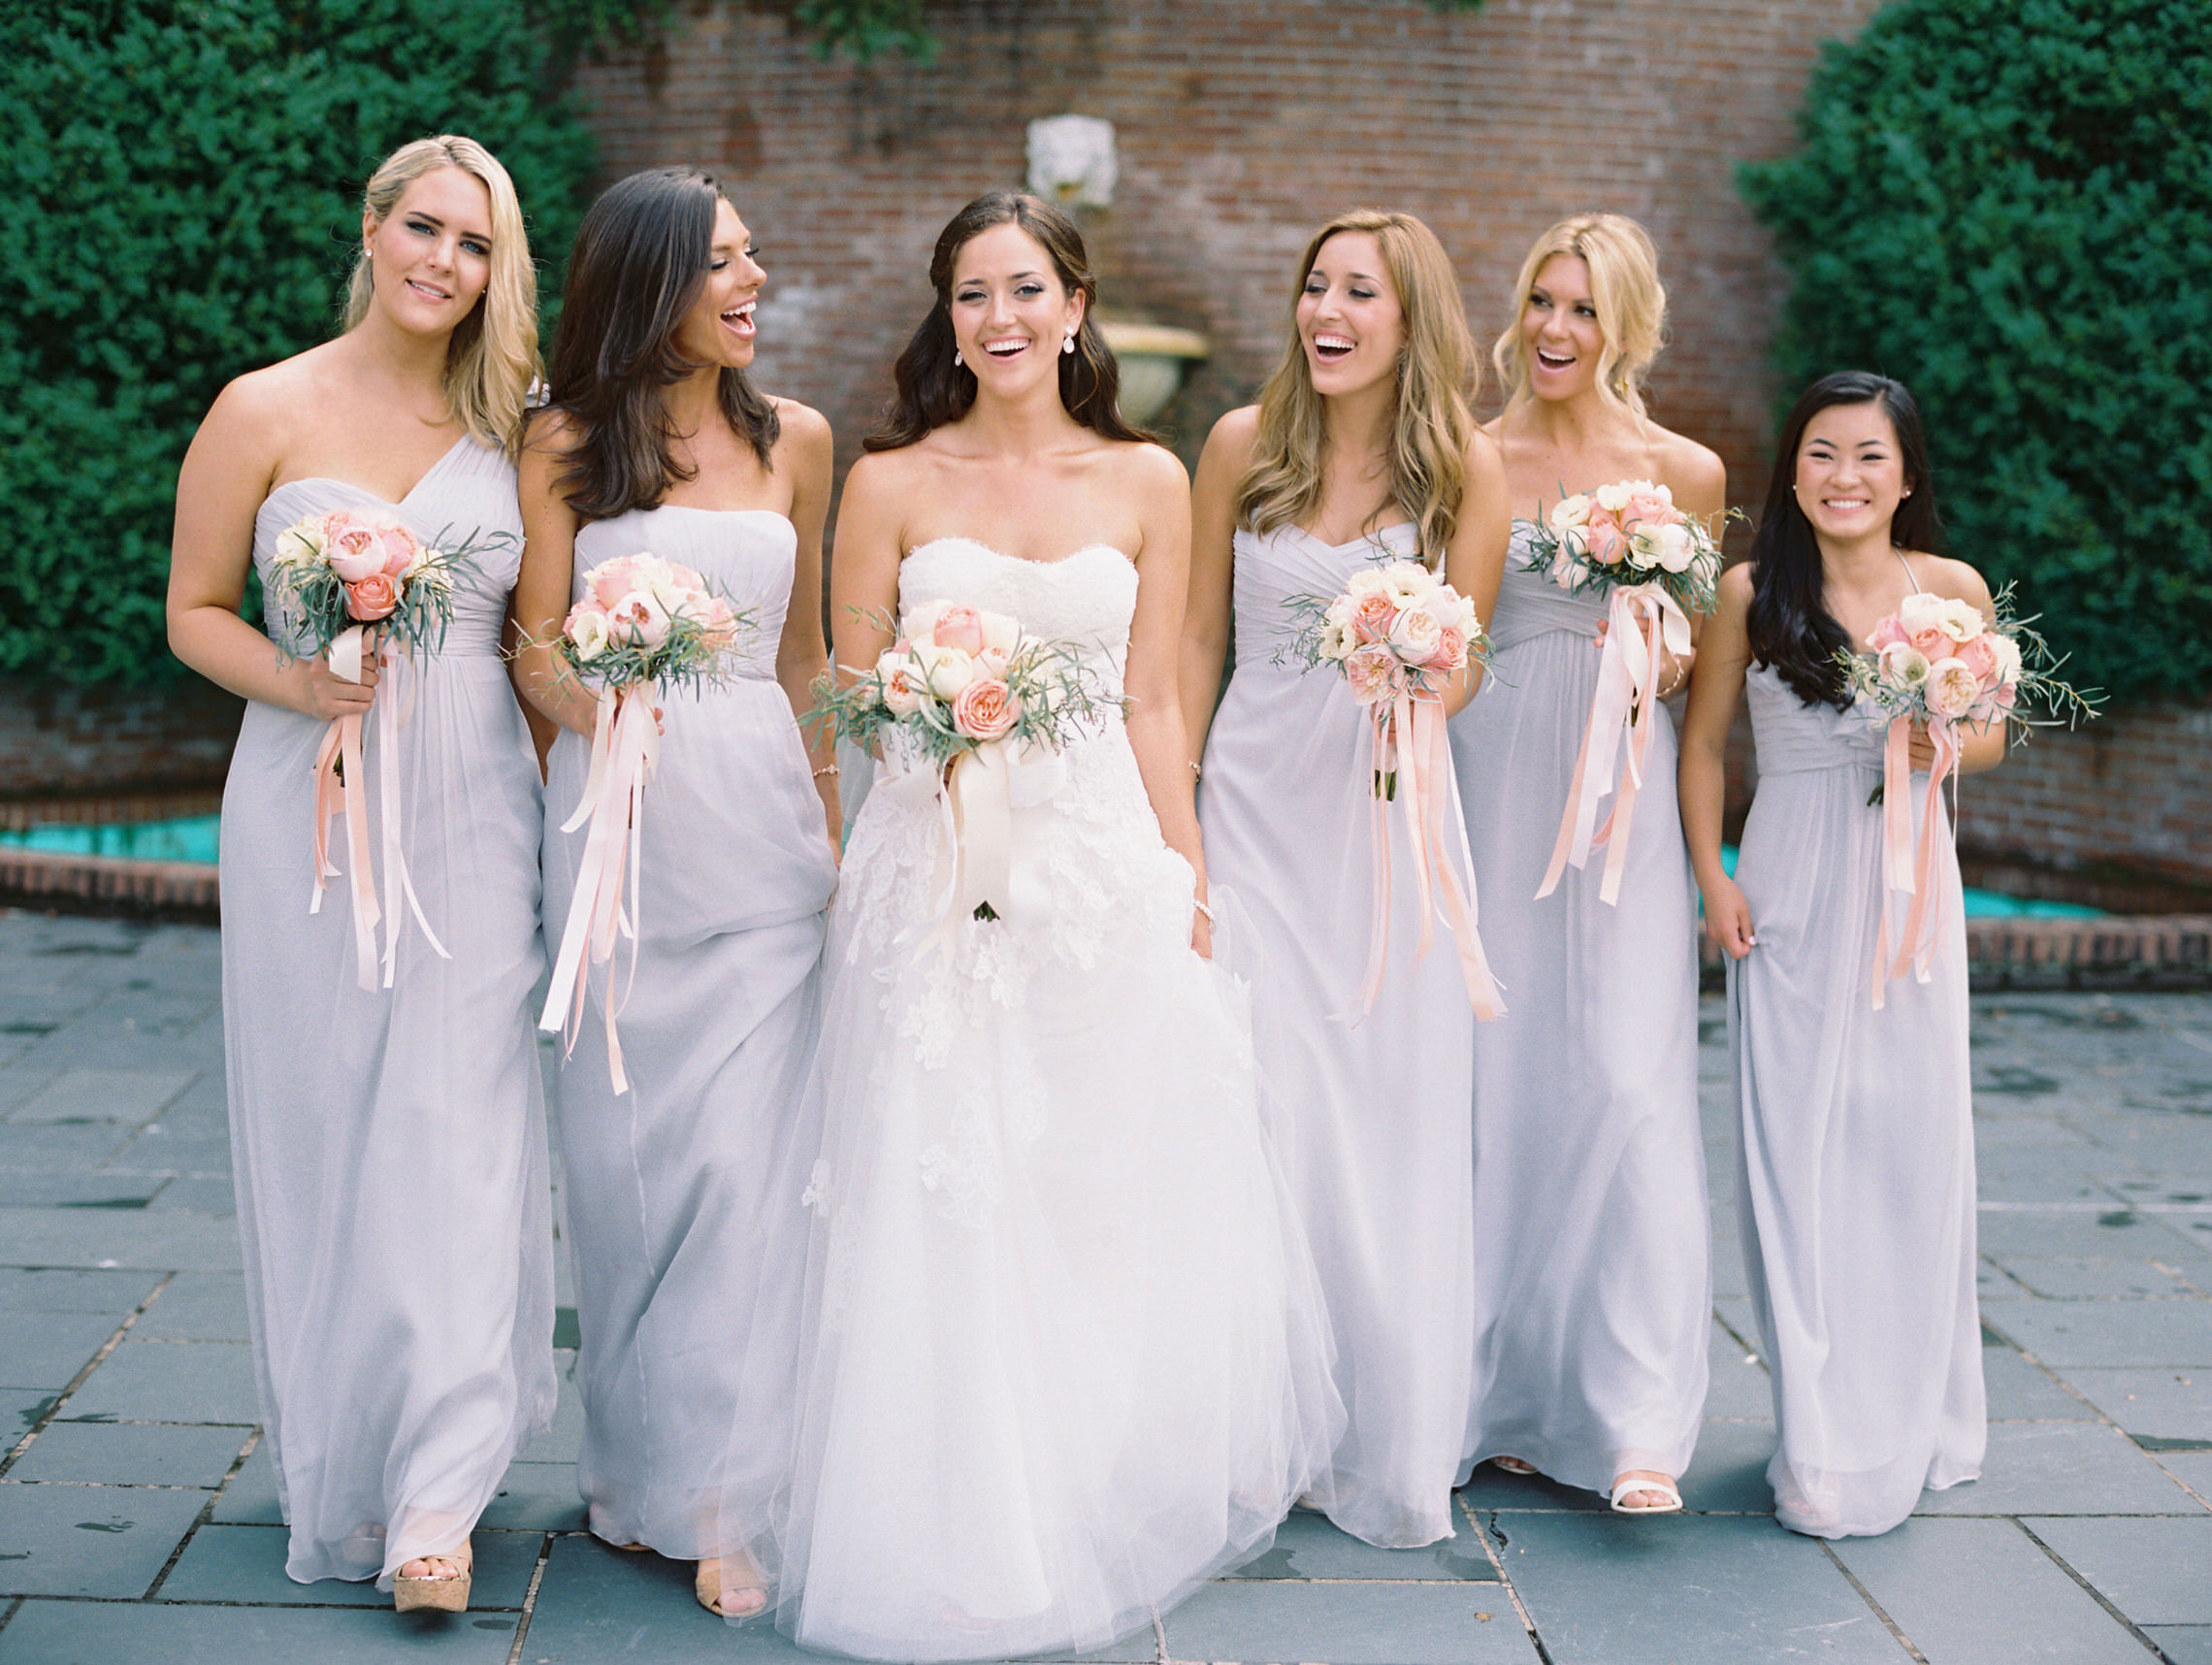 Abby huntsman wedding